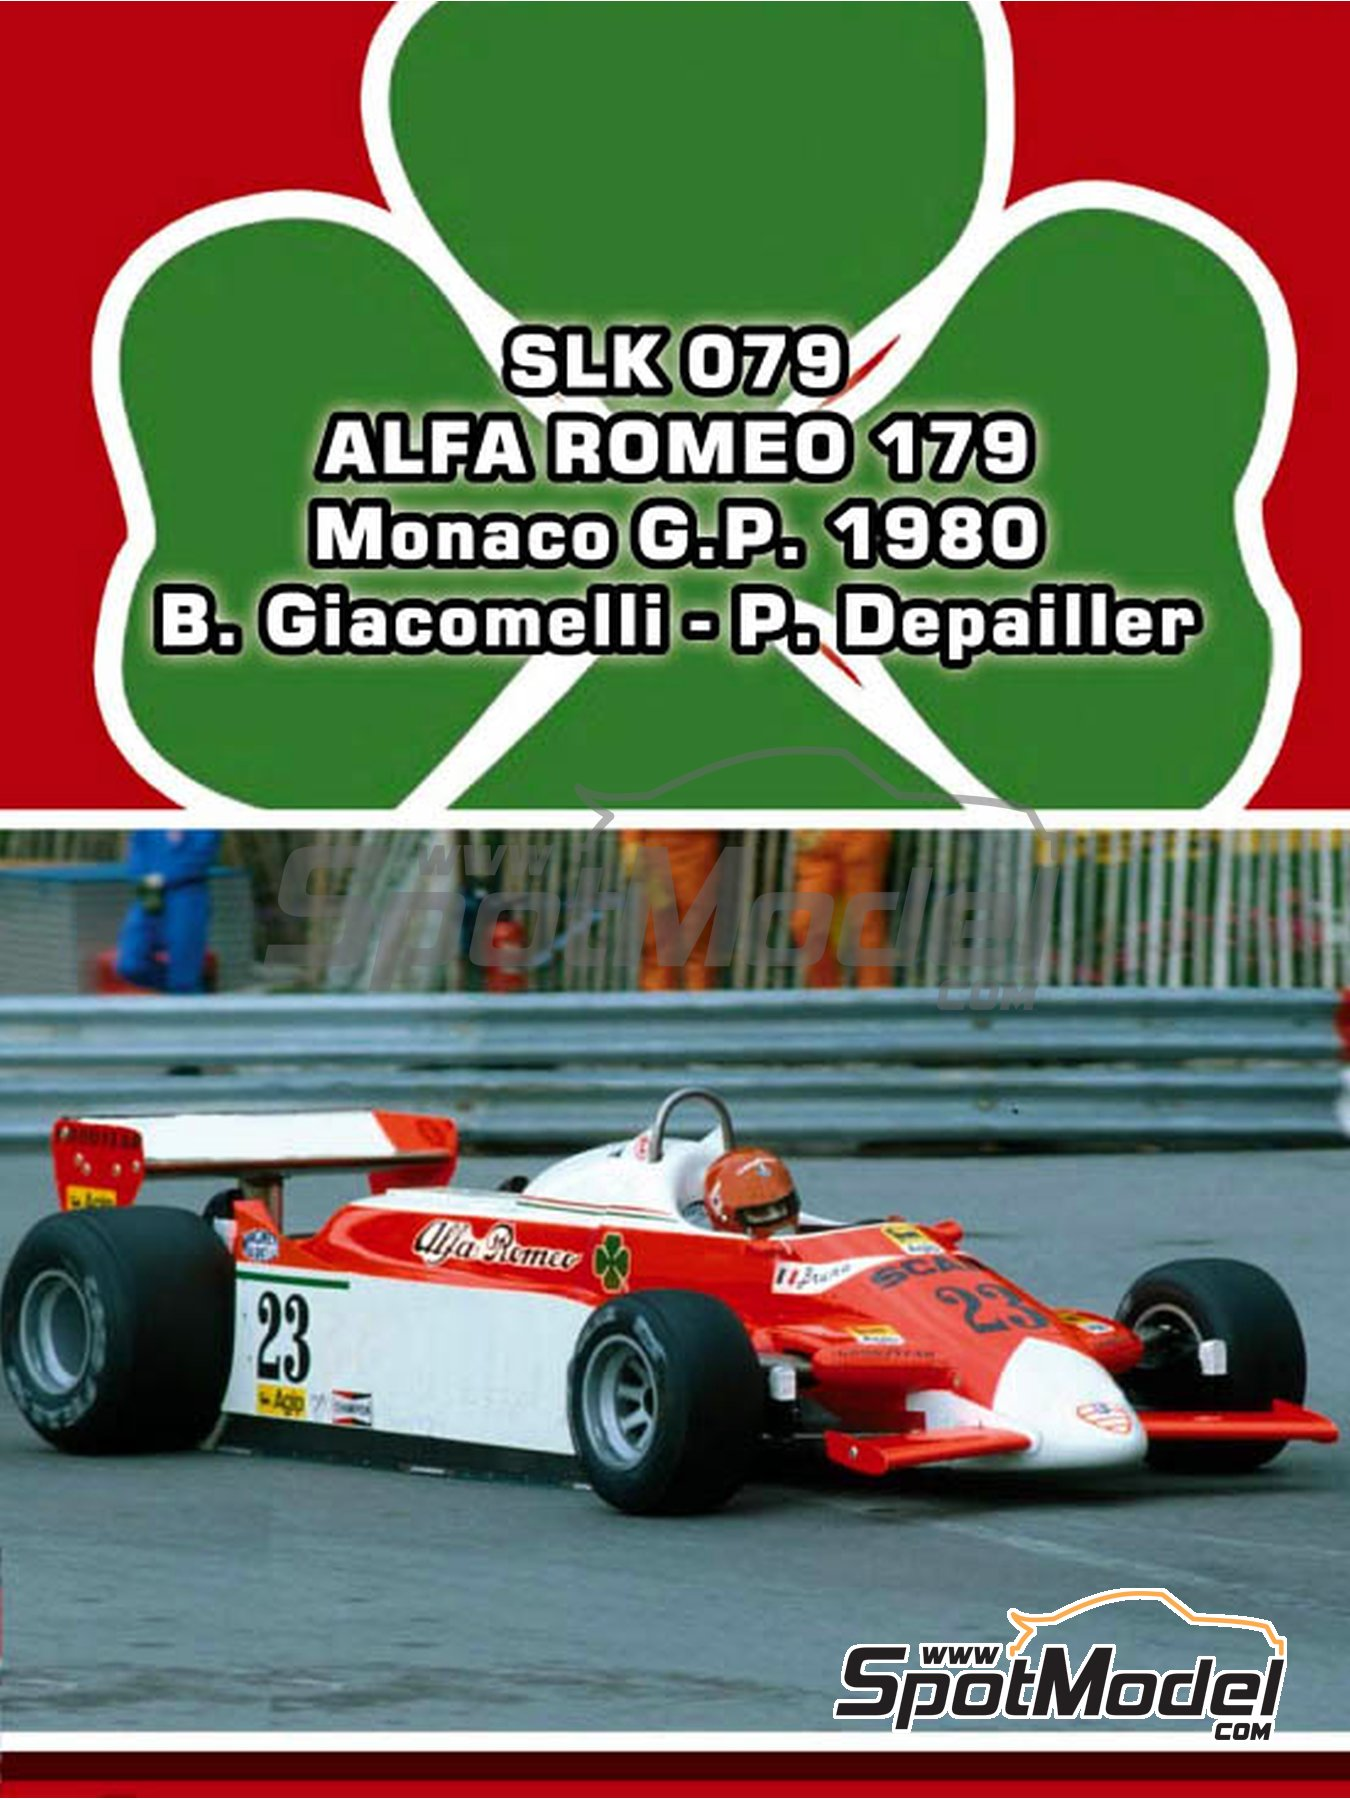 Alfa Romeo 179 Marlboro - Monaco Formula 1 Grand Prix 1980 | Model car kit in 1/43 scale manufactured by Tameo Kits (ref. SLK079) image